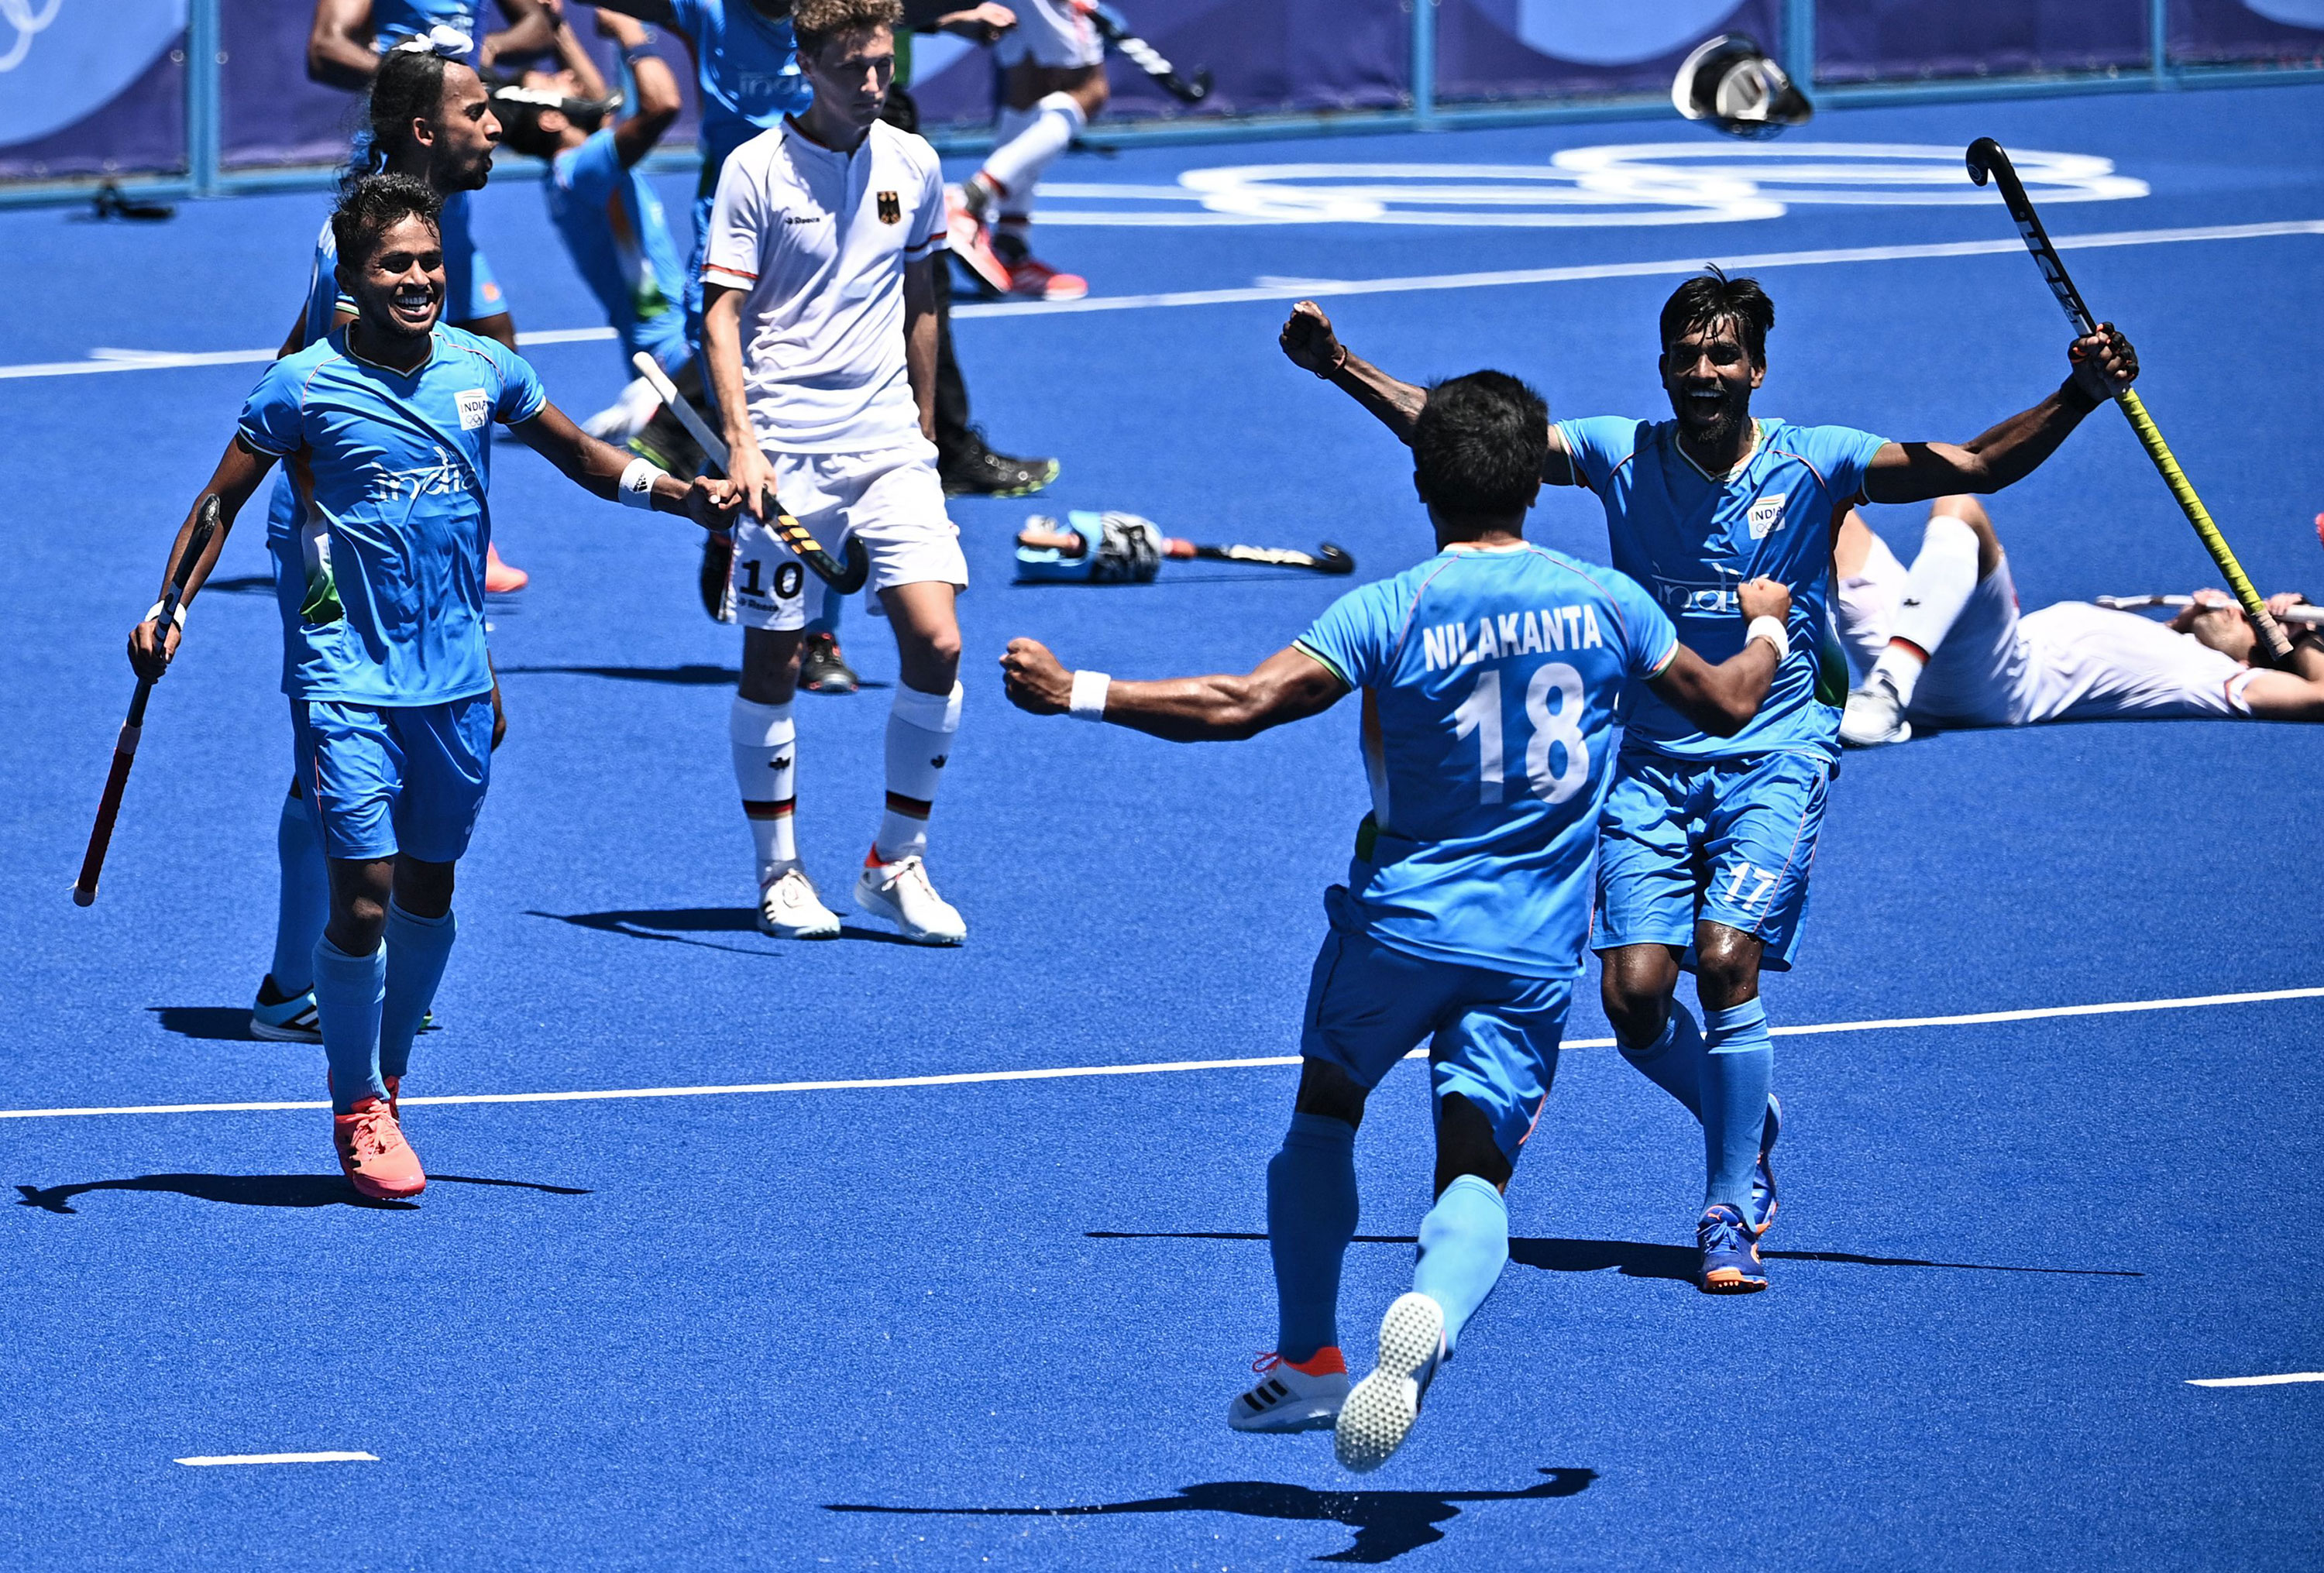 Members of India's mens field hockey team celebrate after defeating Germany for the bronze on August 5.